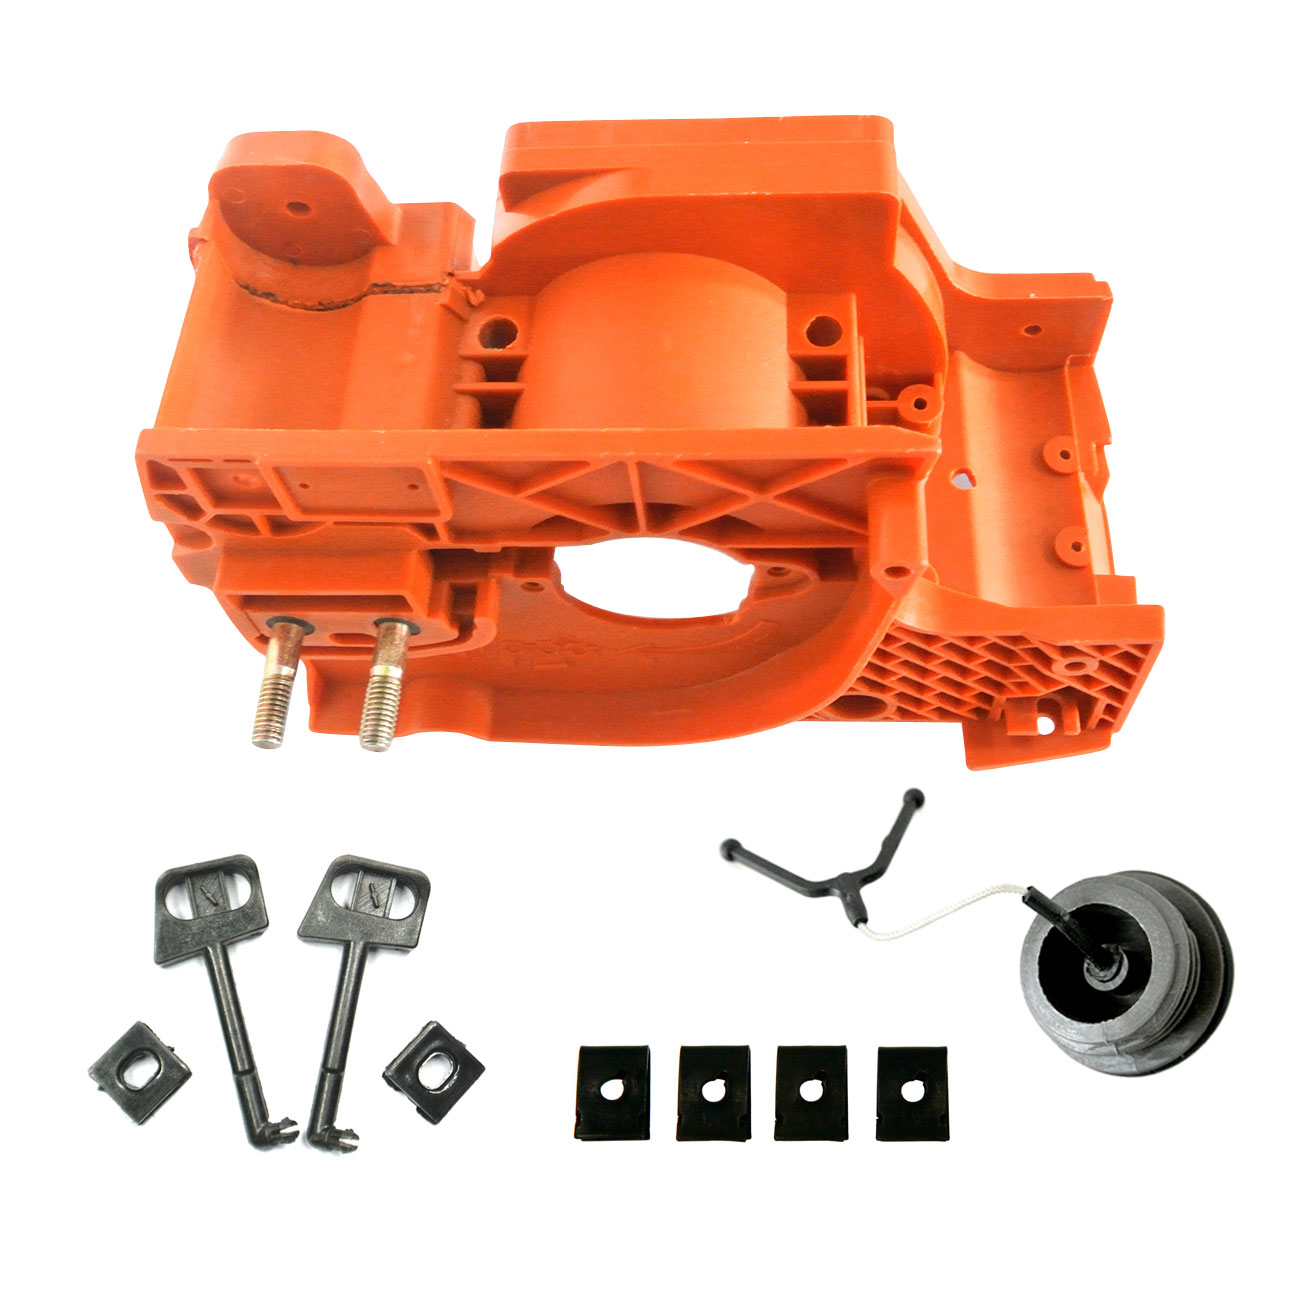 Crankcase Engine Housing Cover Fit For HUSQVARNA 137 142 Chainsaws Black